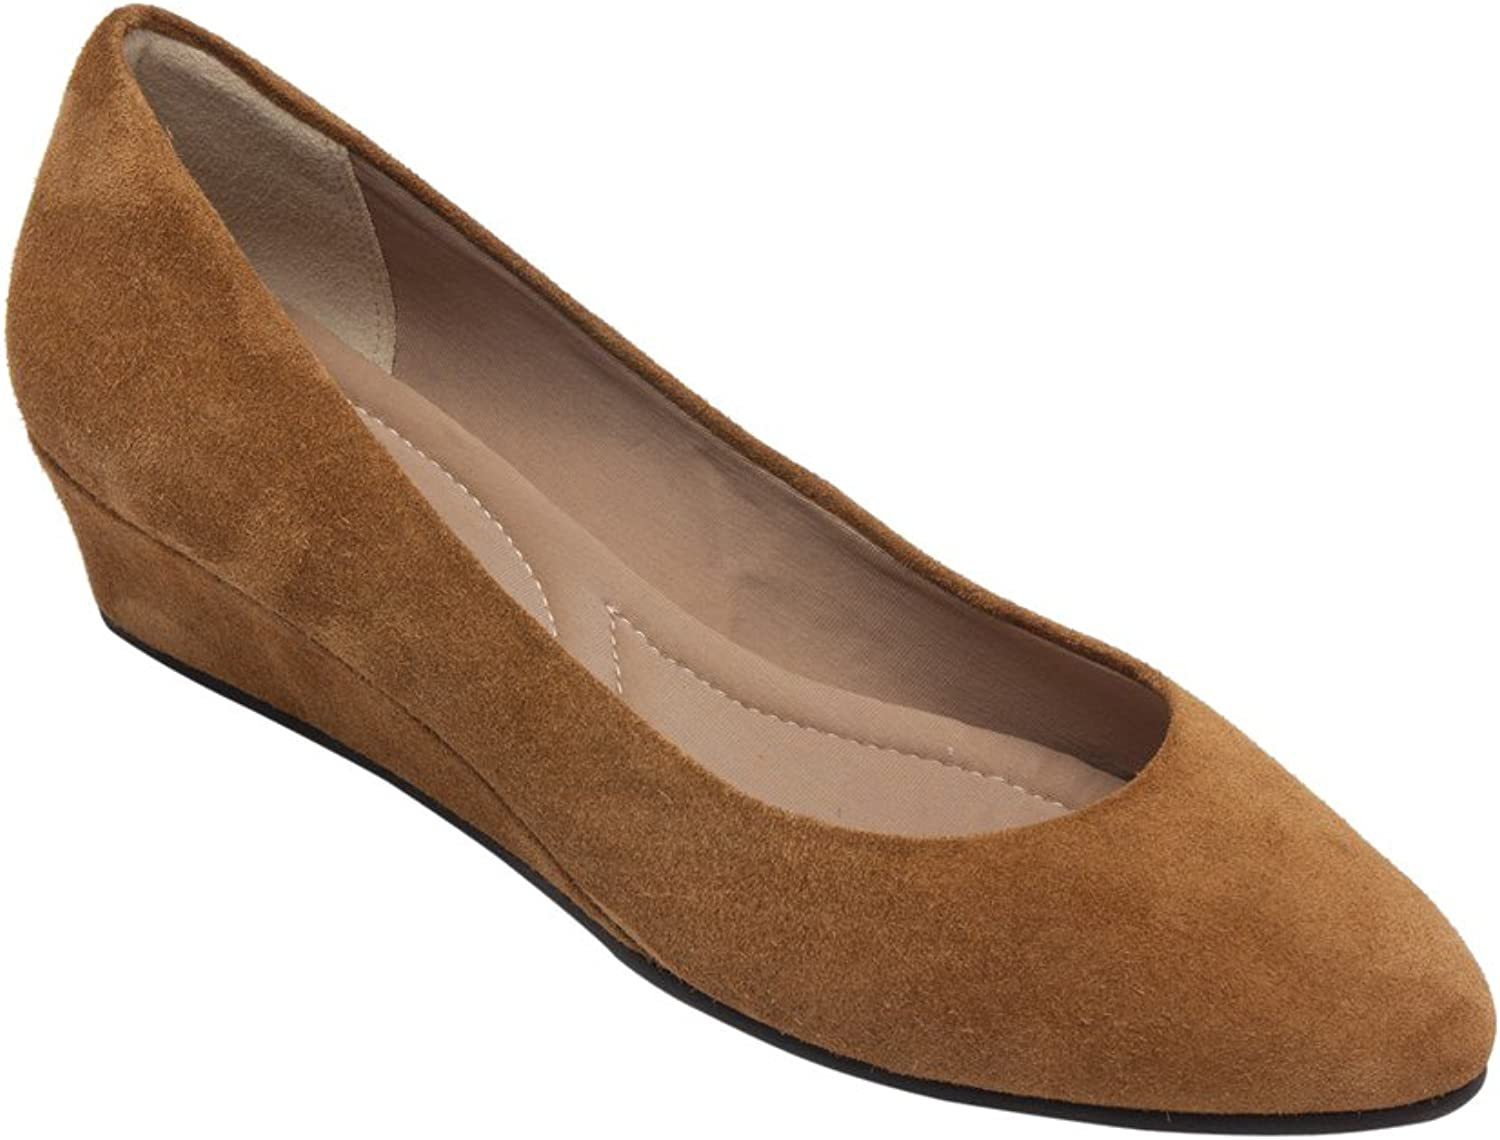 PIC PAY Talia - Women's Pumps Wrapped Wedge - Mid Height Heel Suede Leather Comfortable Slip-On shoesCamel Suede 6.5M